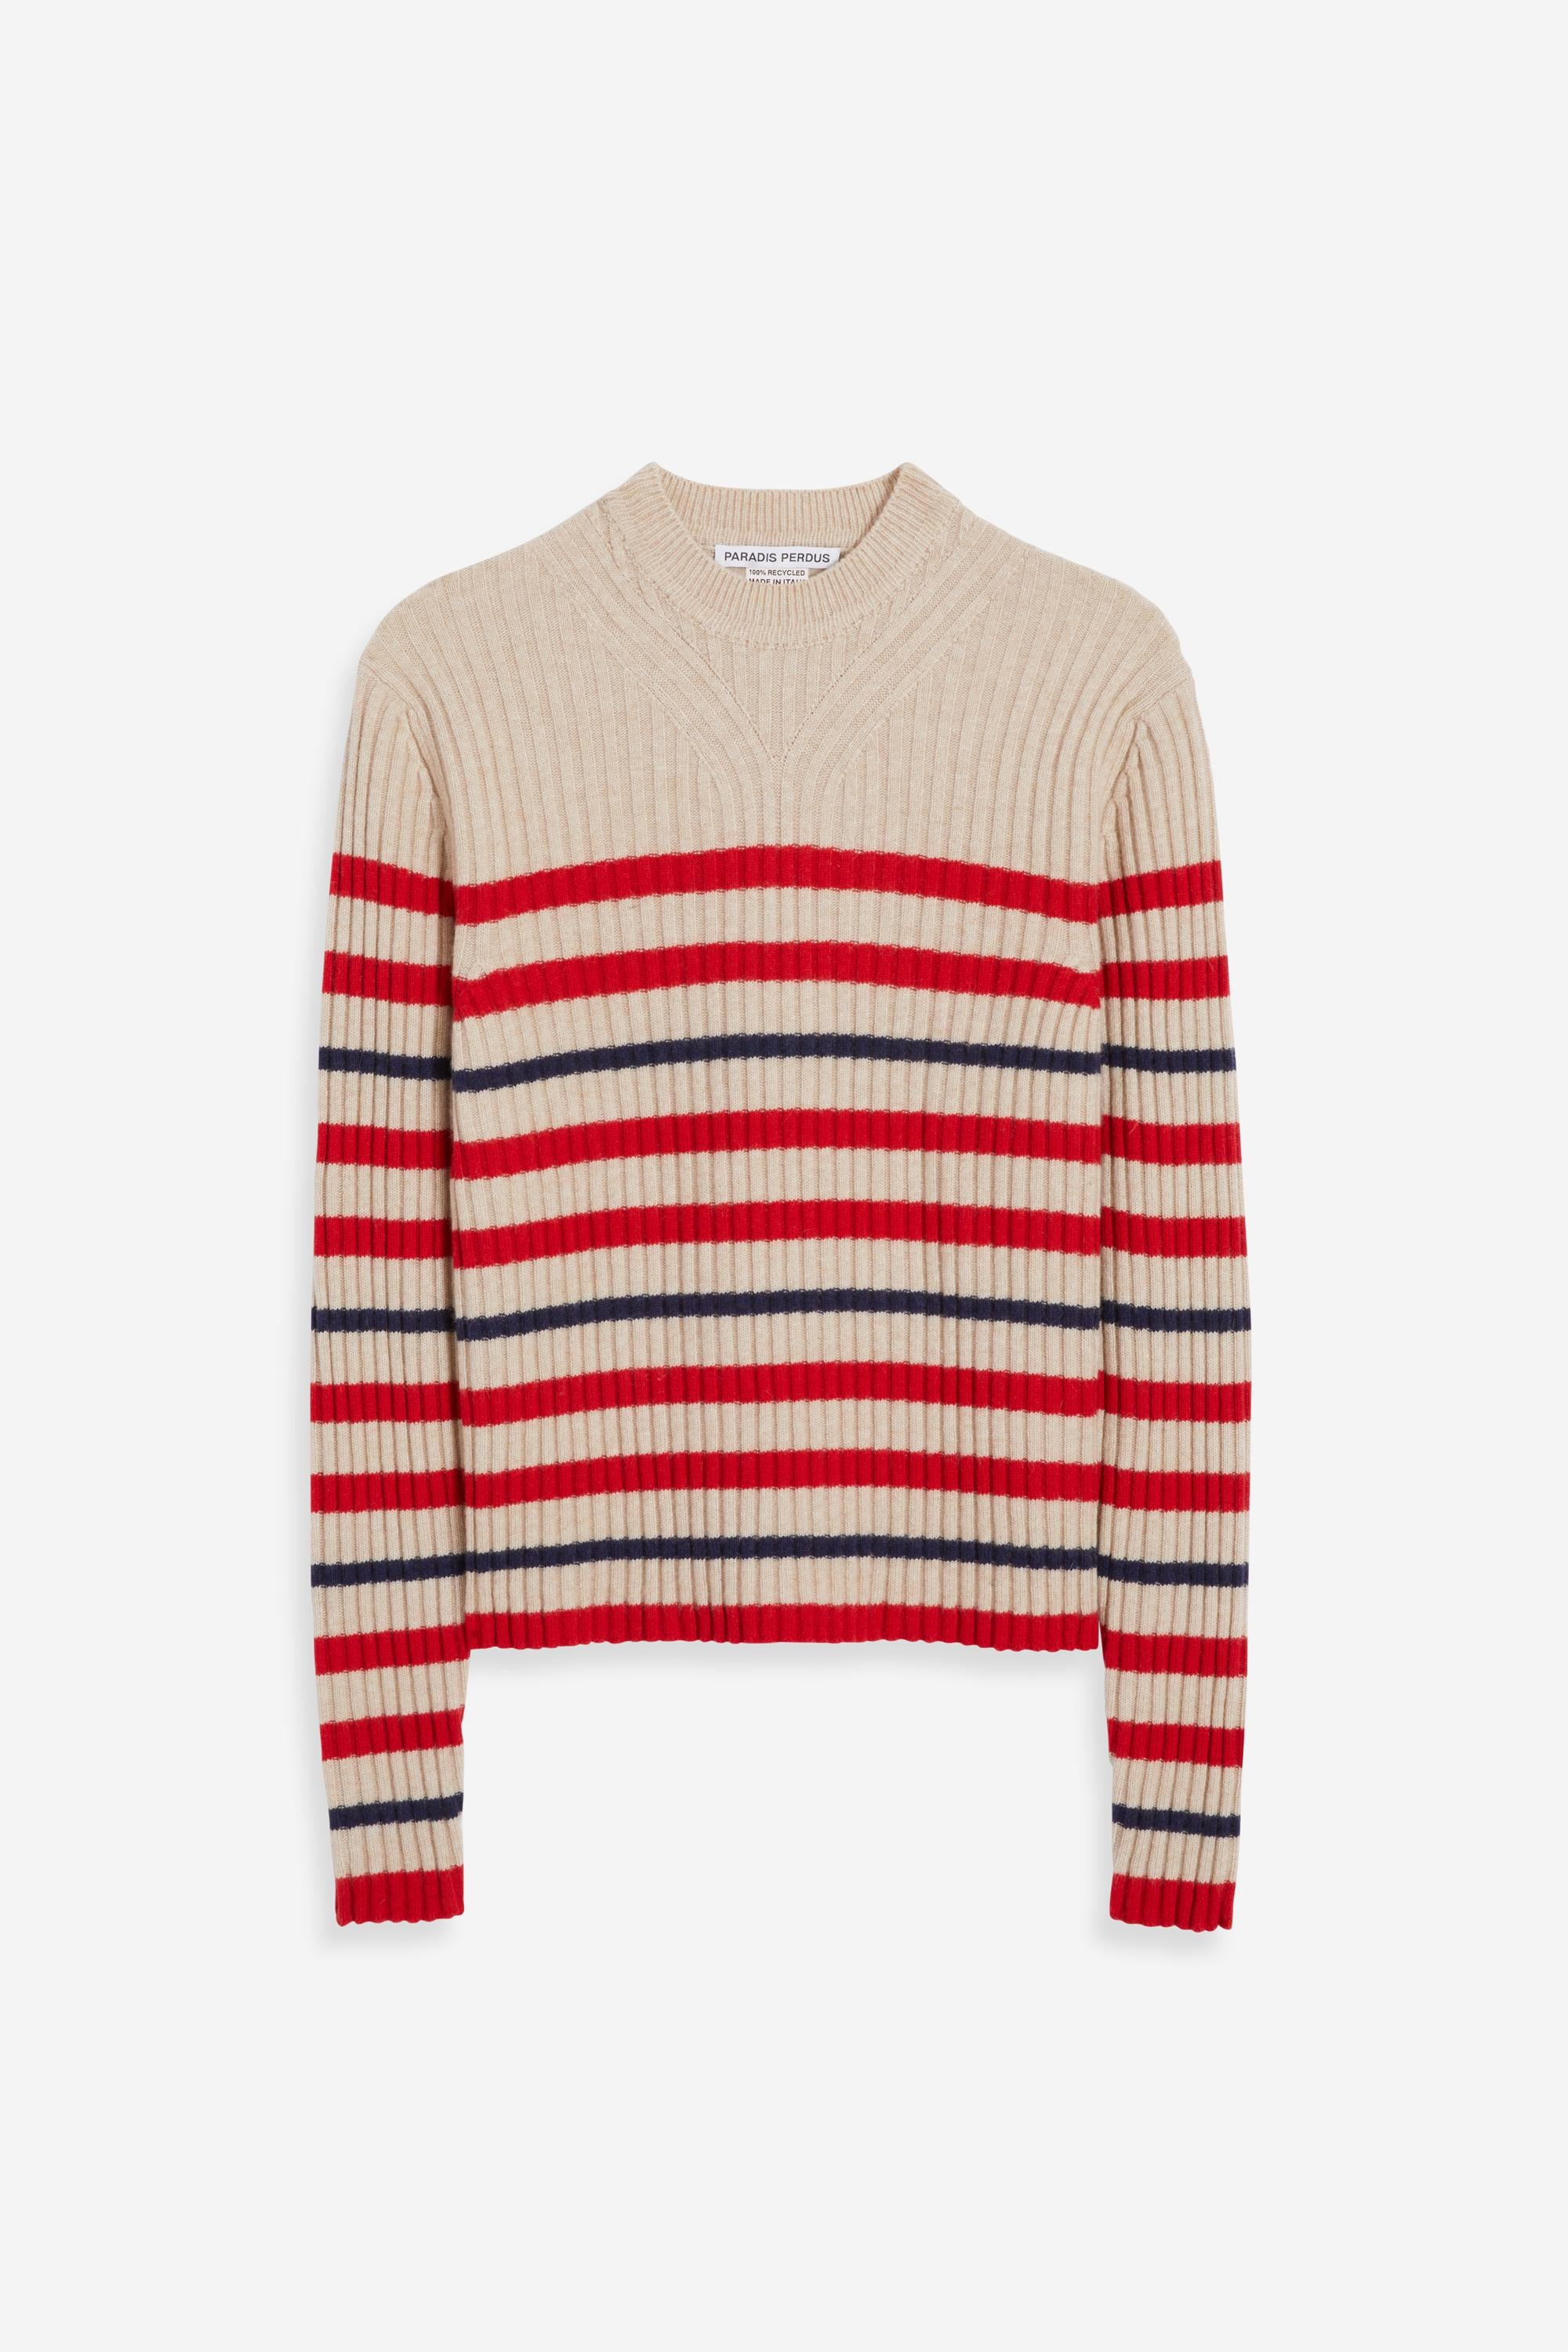 CÔME | Stripe Beige Red Blue